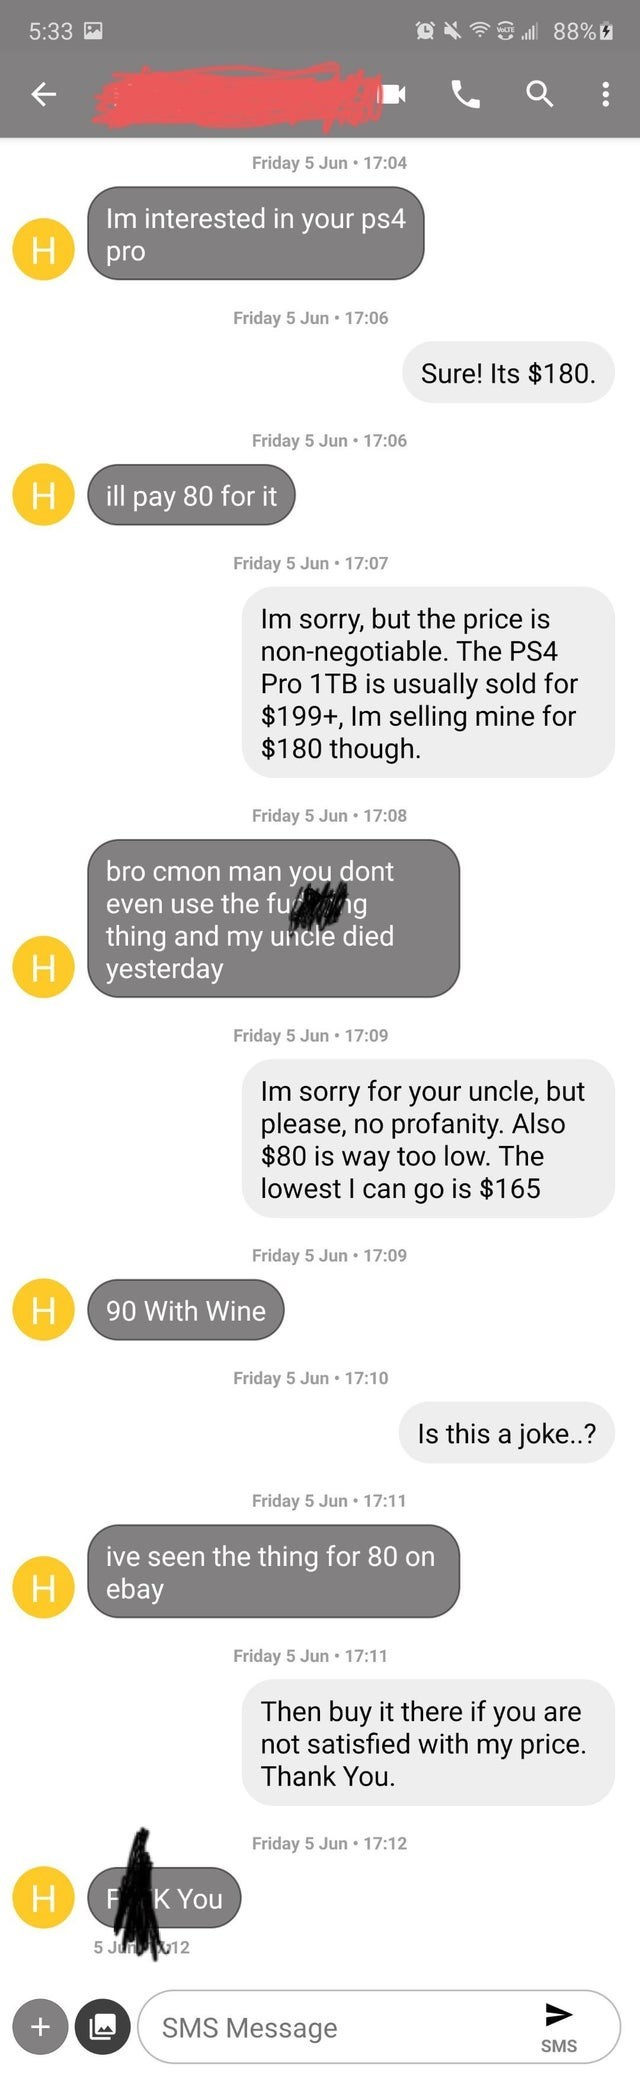 Text - 5:33 Friday 5 Jun •17:04 Im interested in your ps4 H pro Friday 5 Jun • 17:06 Sure! Its $180. Friday 5 Jun • 17:06 H ill pay 80 for it Friday 5 Jun • 17:07 Im sorry, but the price is non-negotiable. The PS4 Pro 1TB is usually sold for $199+, Im selling mine for $180 though. Friday 5 Jun 17:08 bro cmon man you dont even use the fu ng thing and my uncle died H yesterday Friday 5 Jun • 17:09 Im sorry for your uncle, but please, no profanity. Also $80 is way too low. The lowest I can go is $1